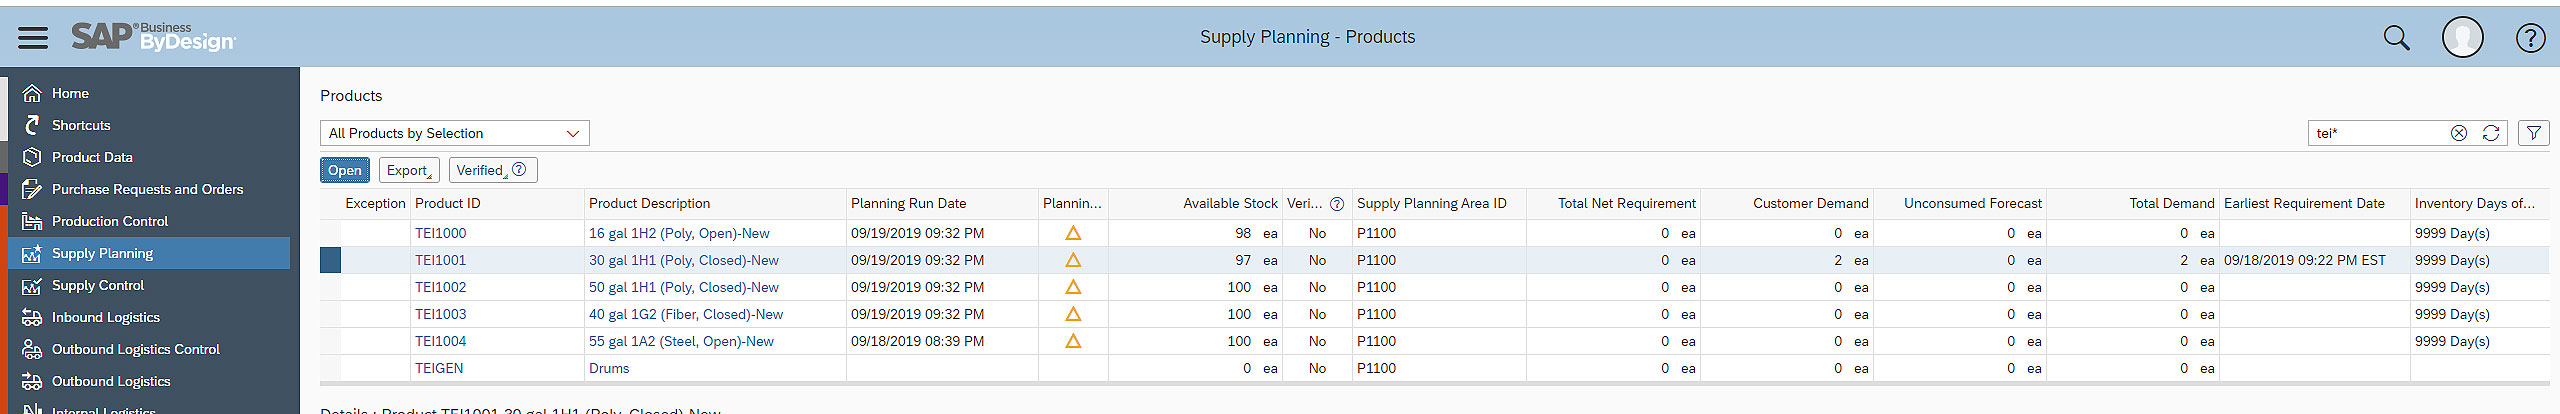 SAP Business ByDesign Supply Planning